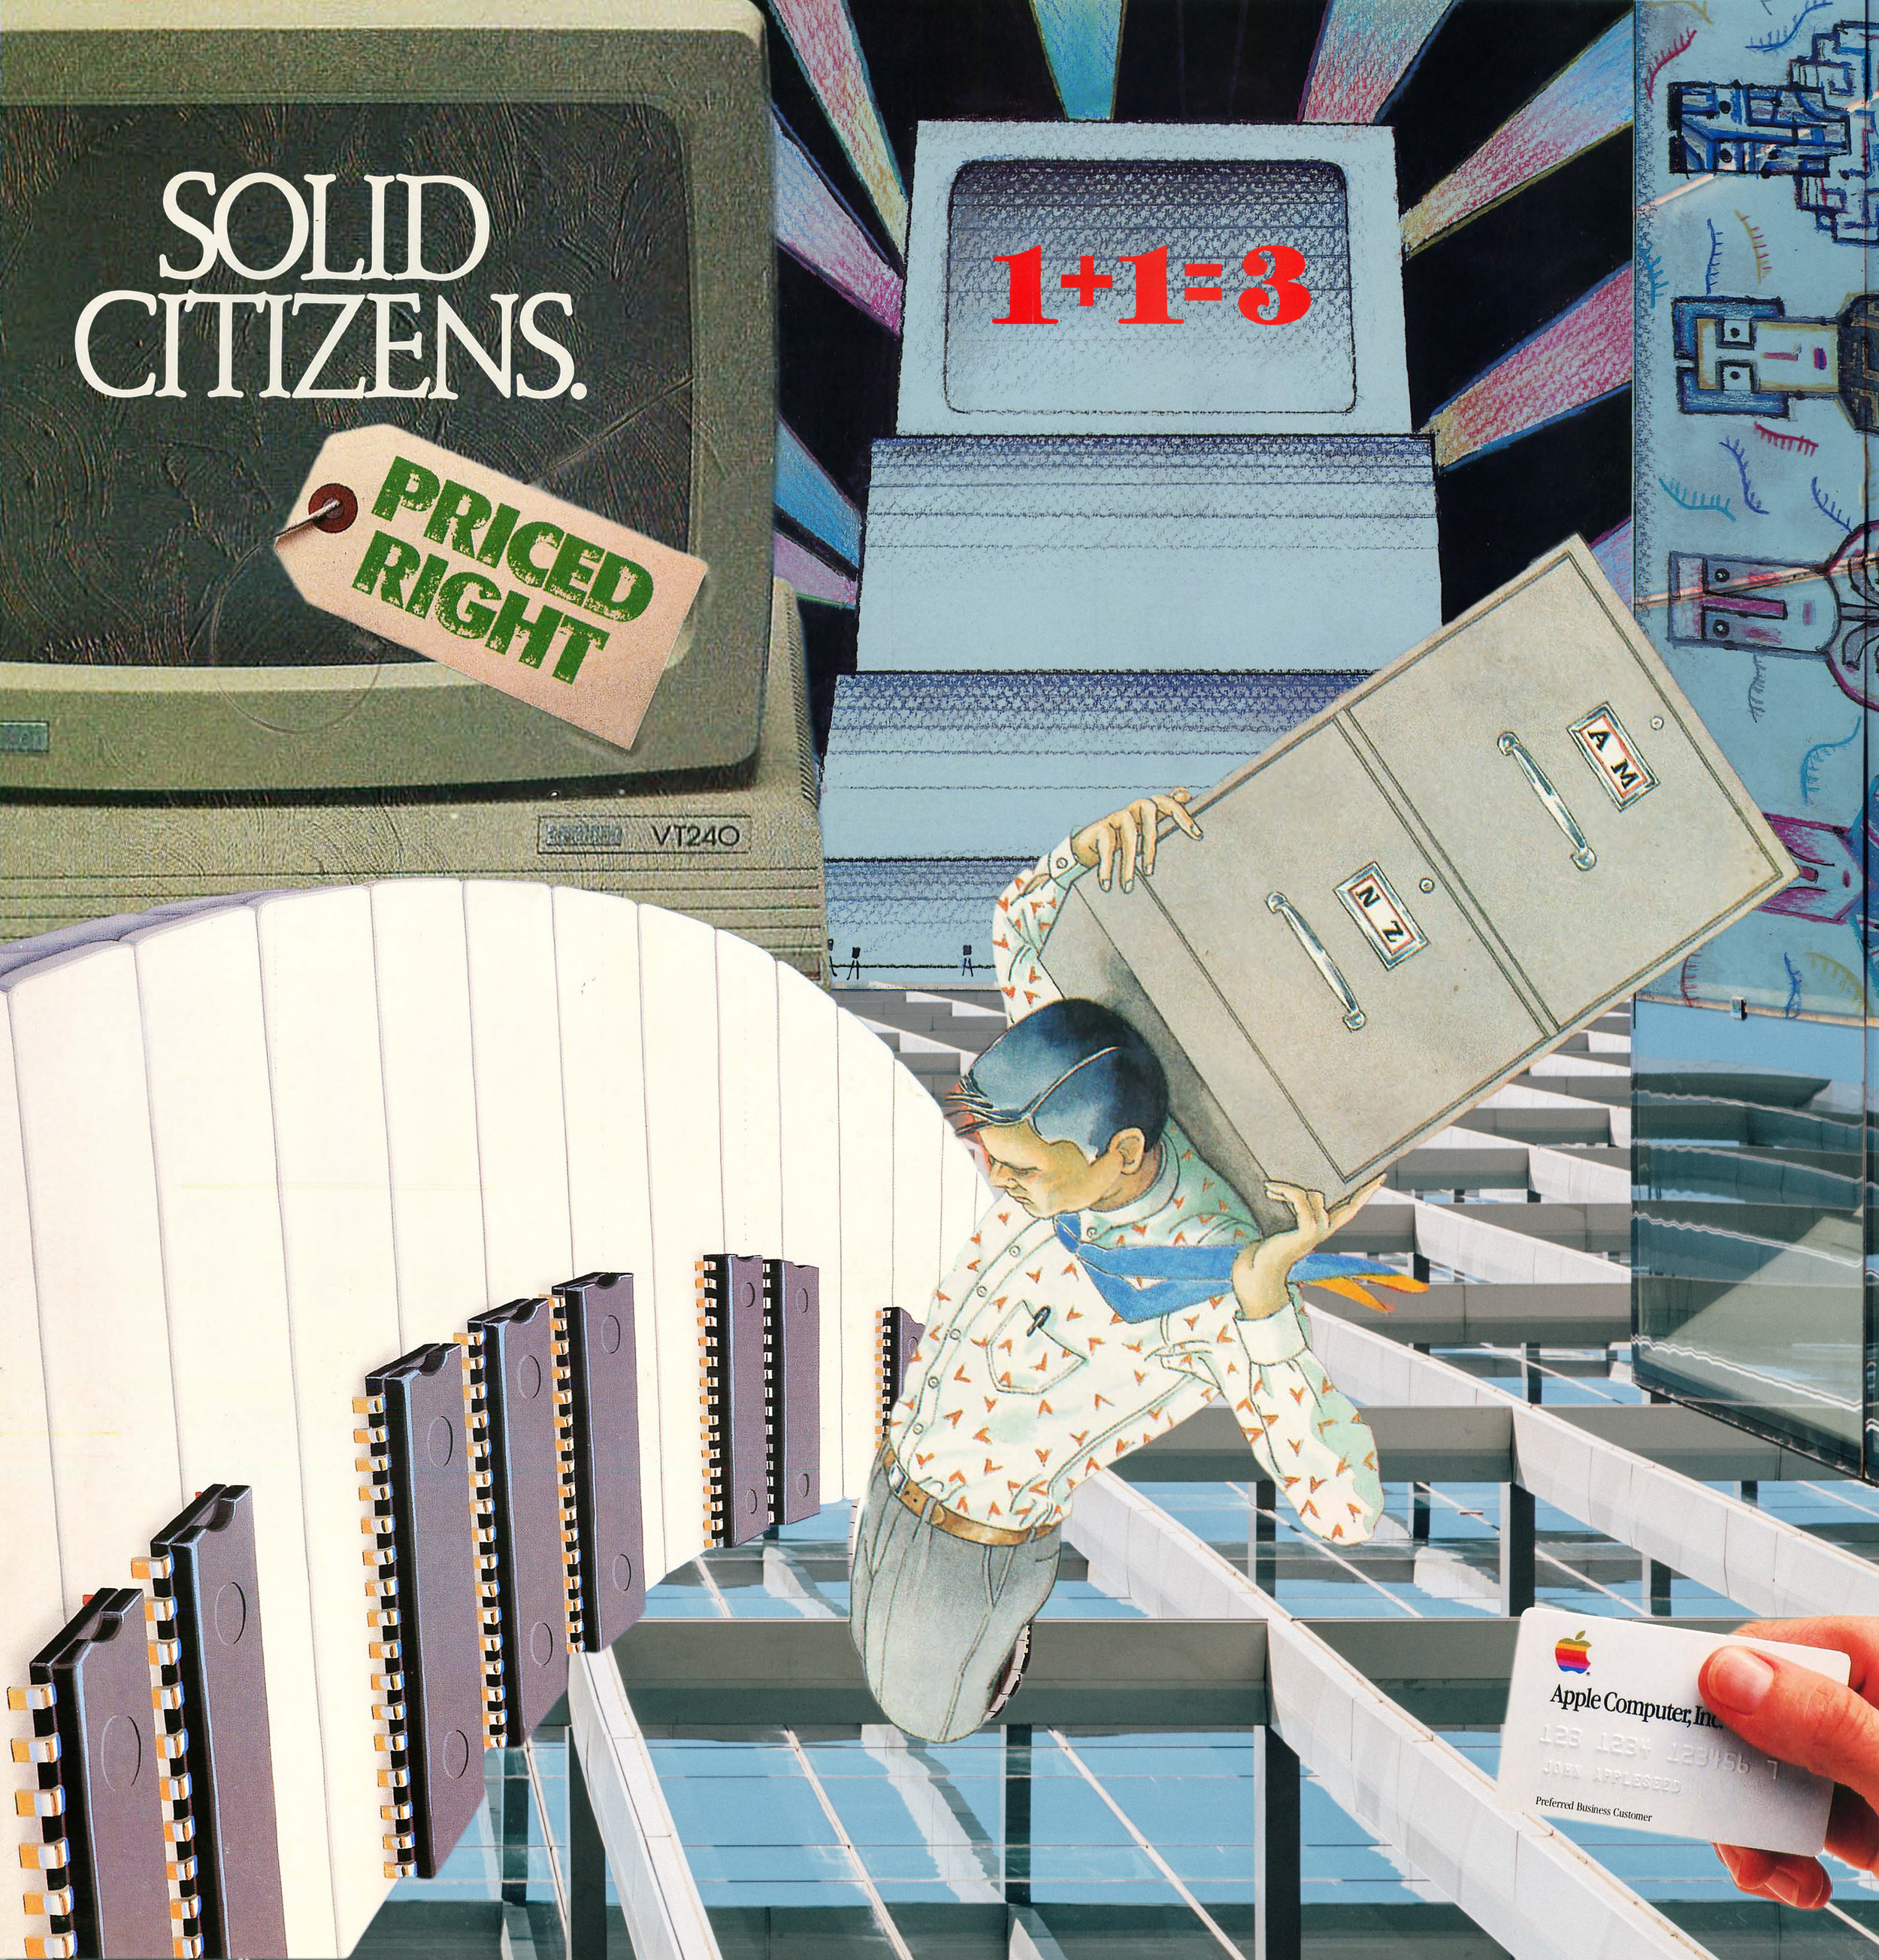 Solid-Citizens-Priced-Right.jpg